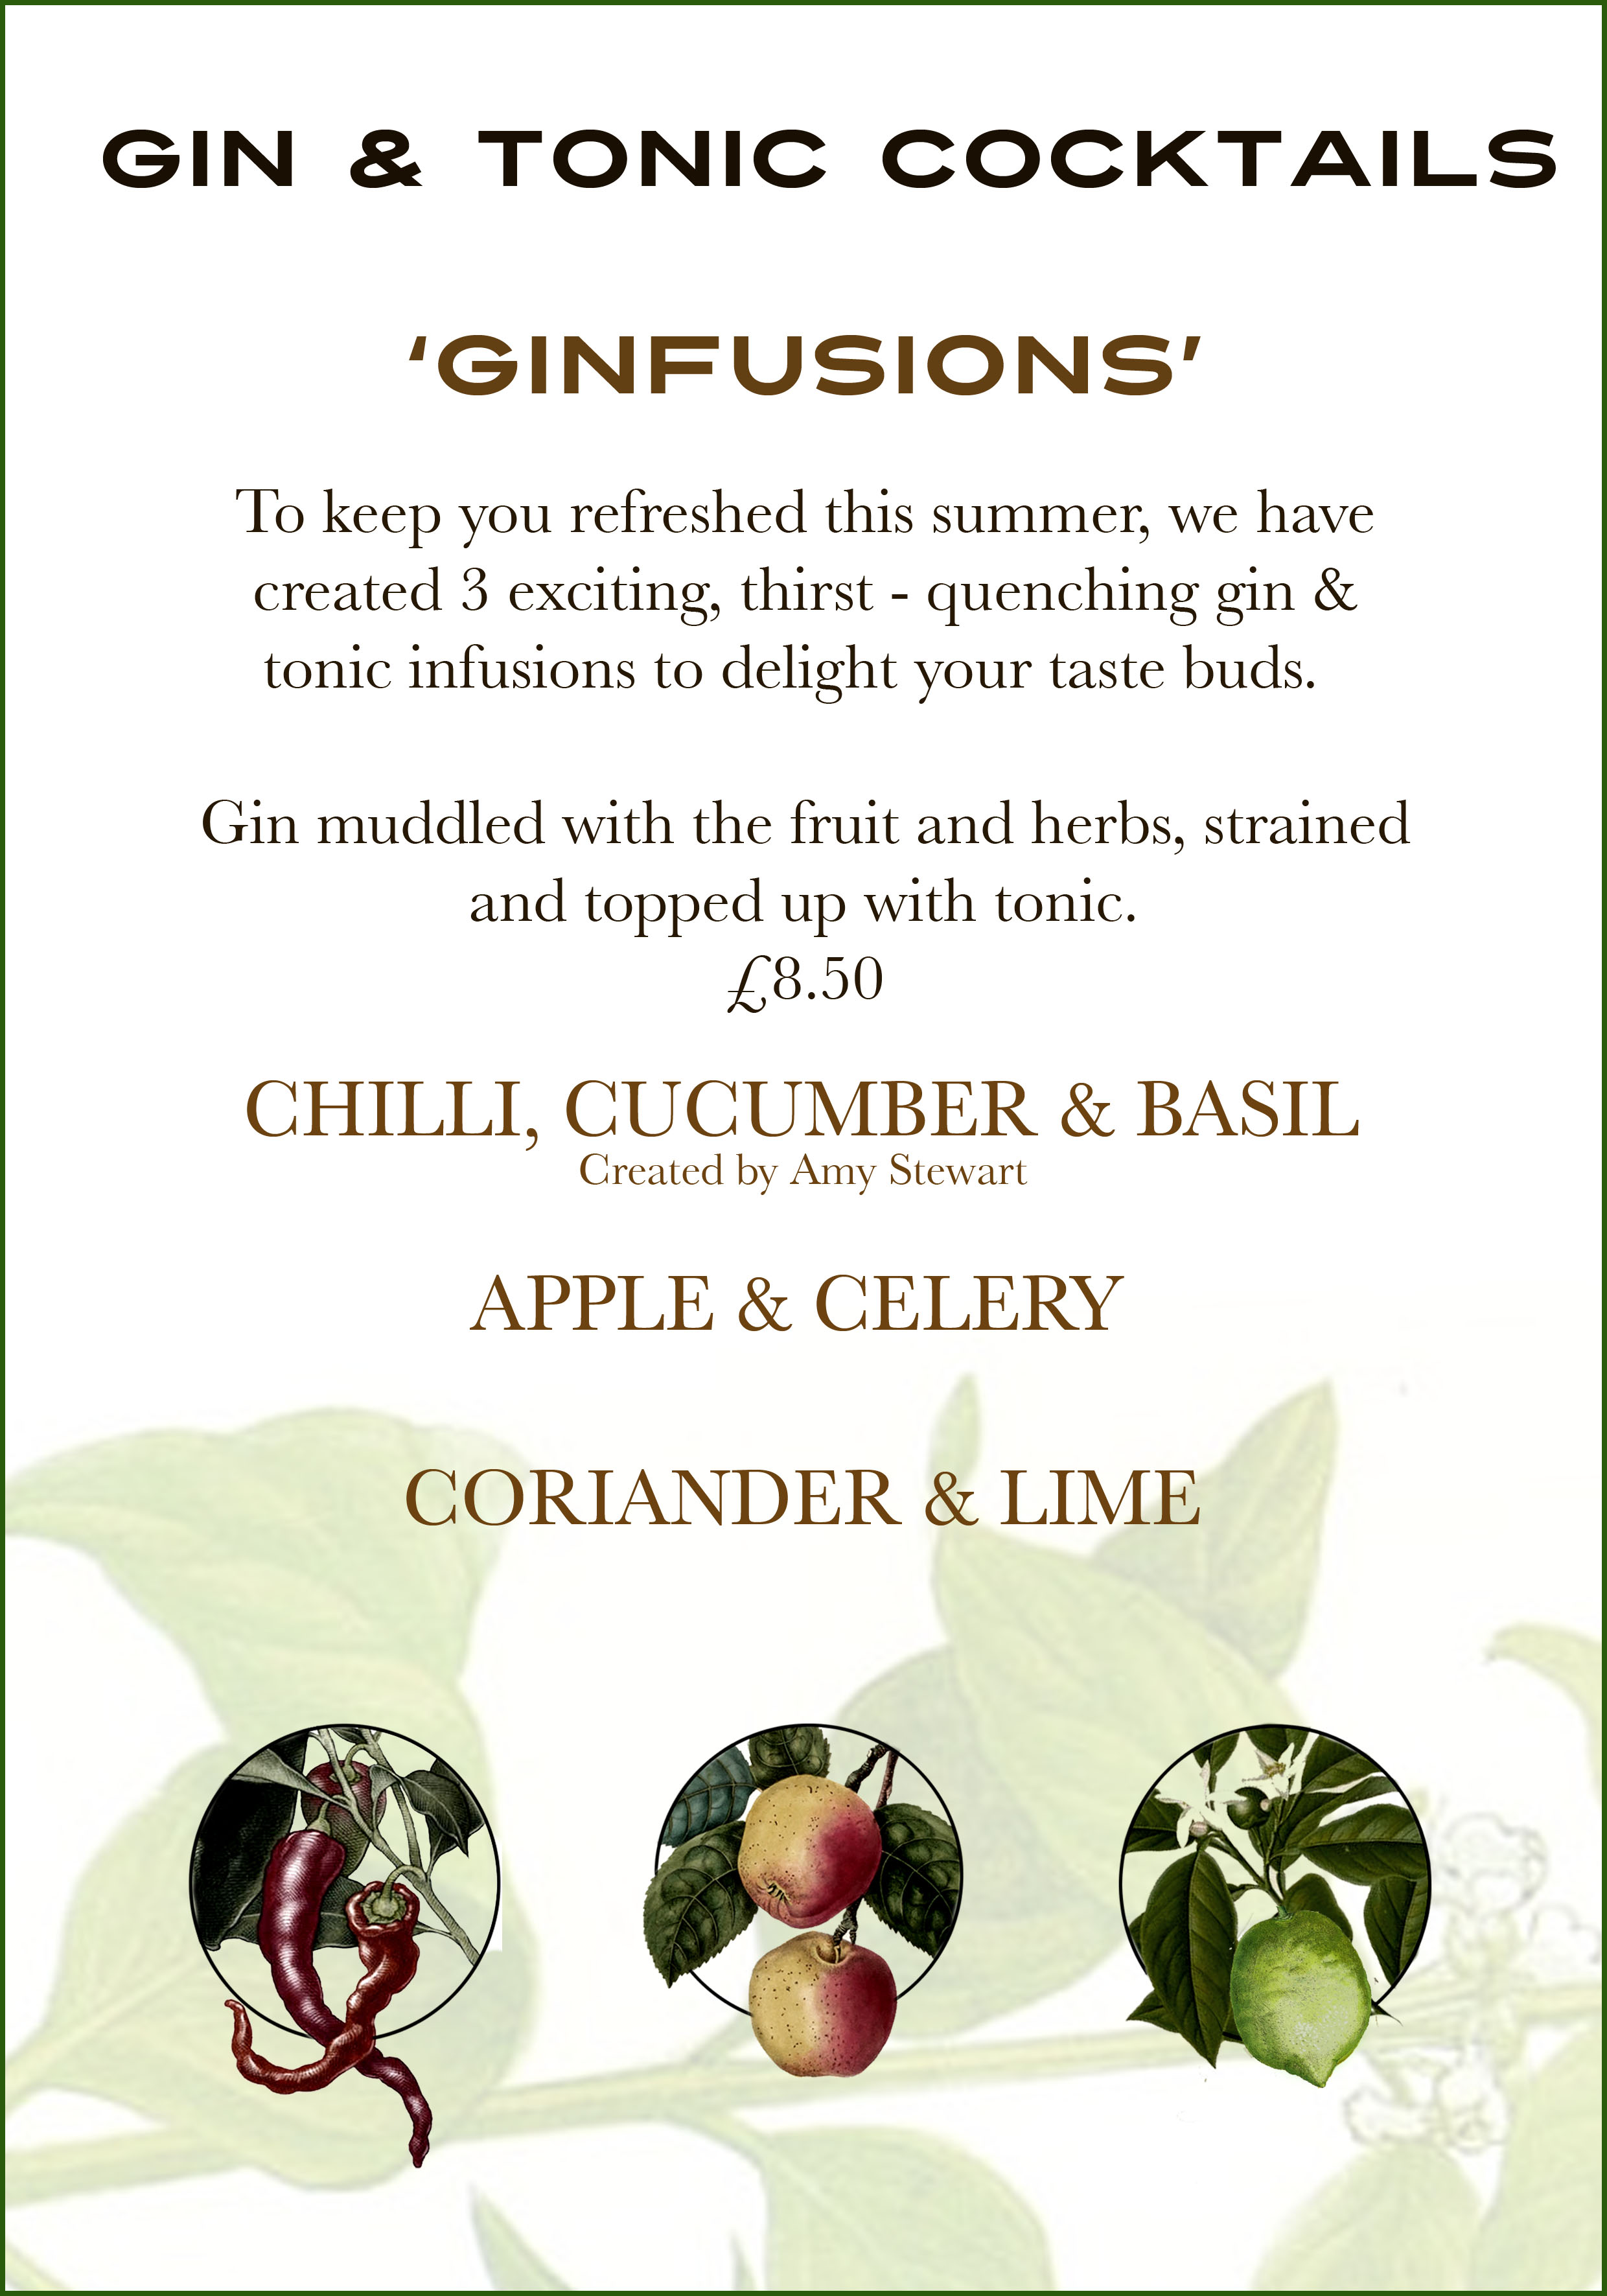 Summer Ginfusions are here